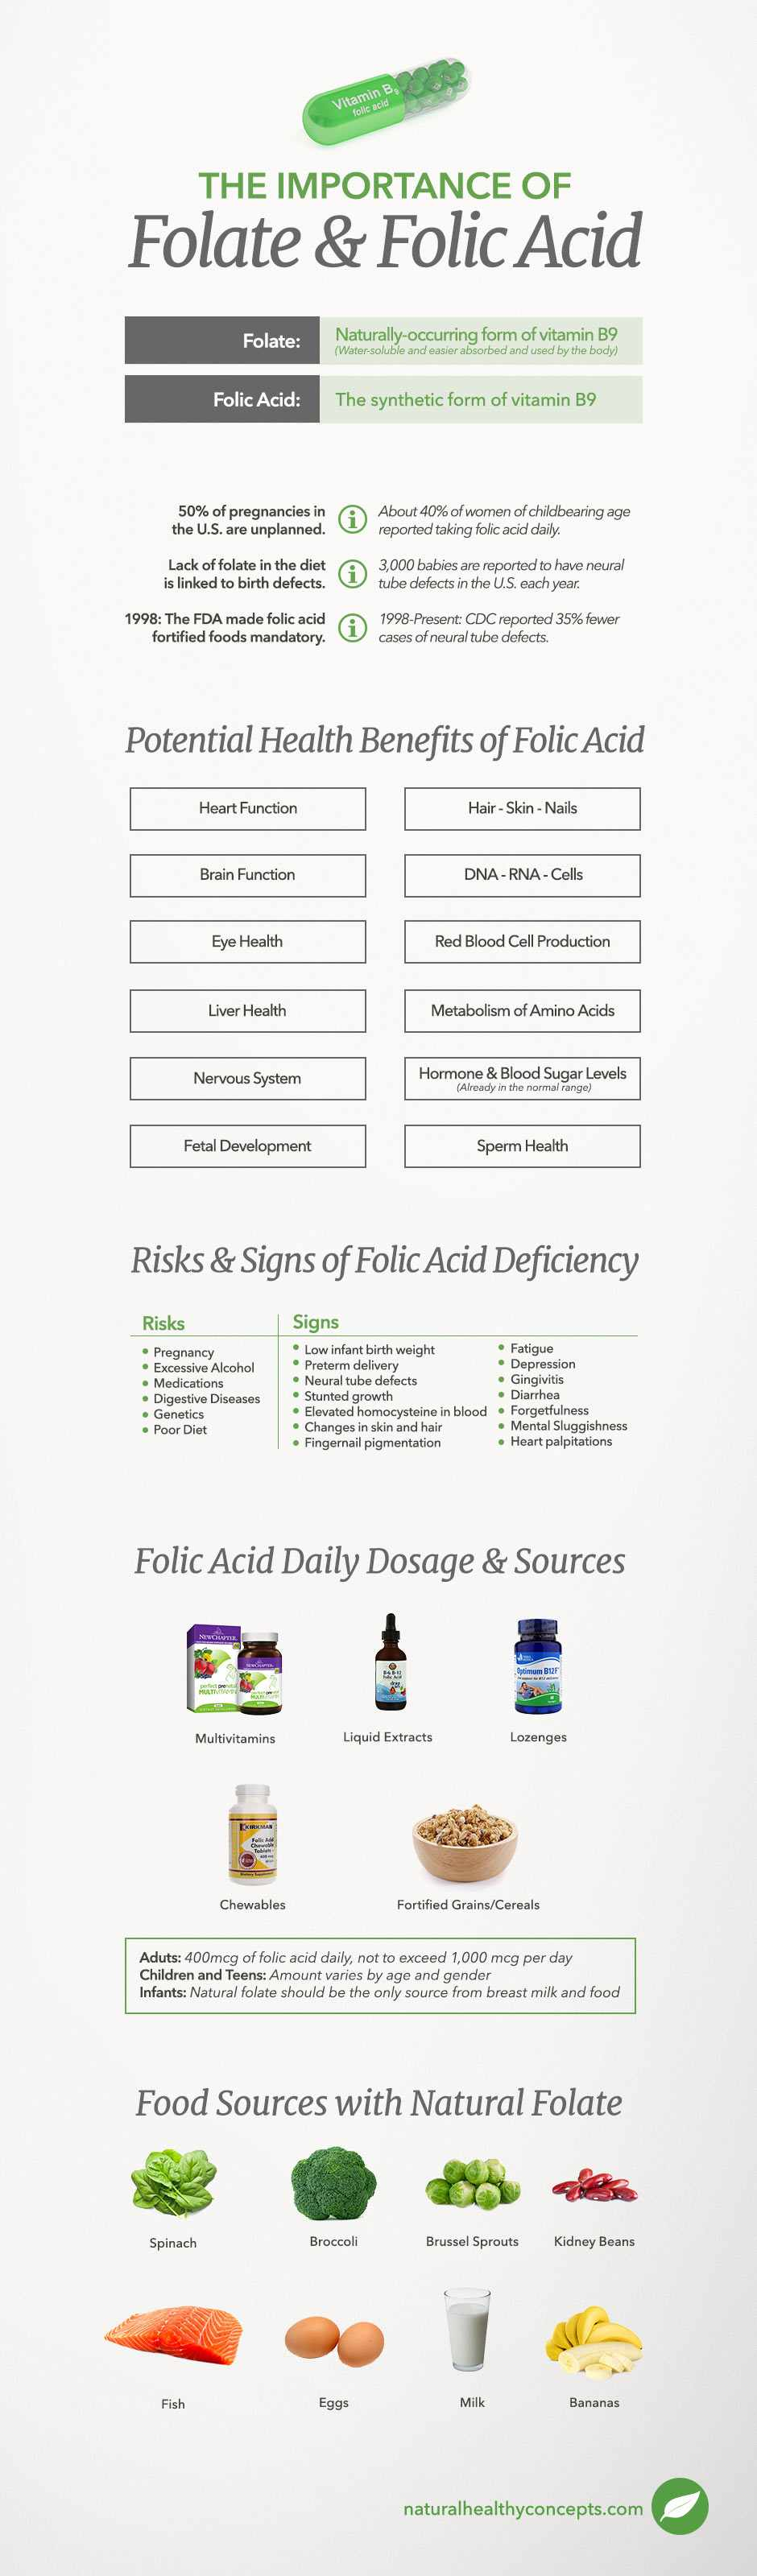 folic acid infographic